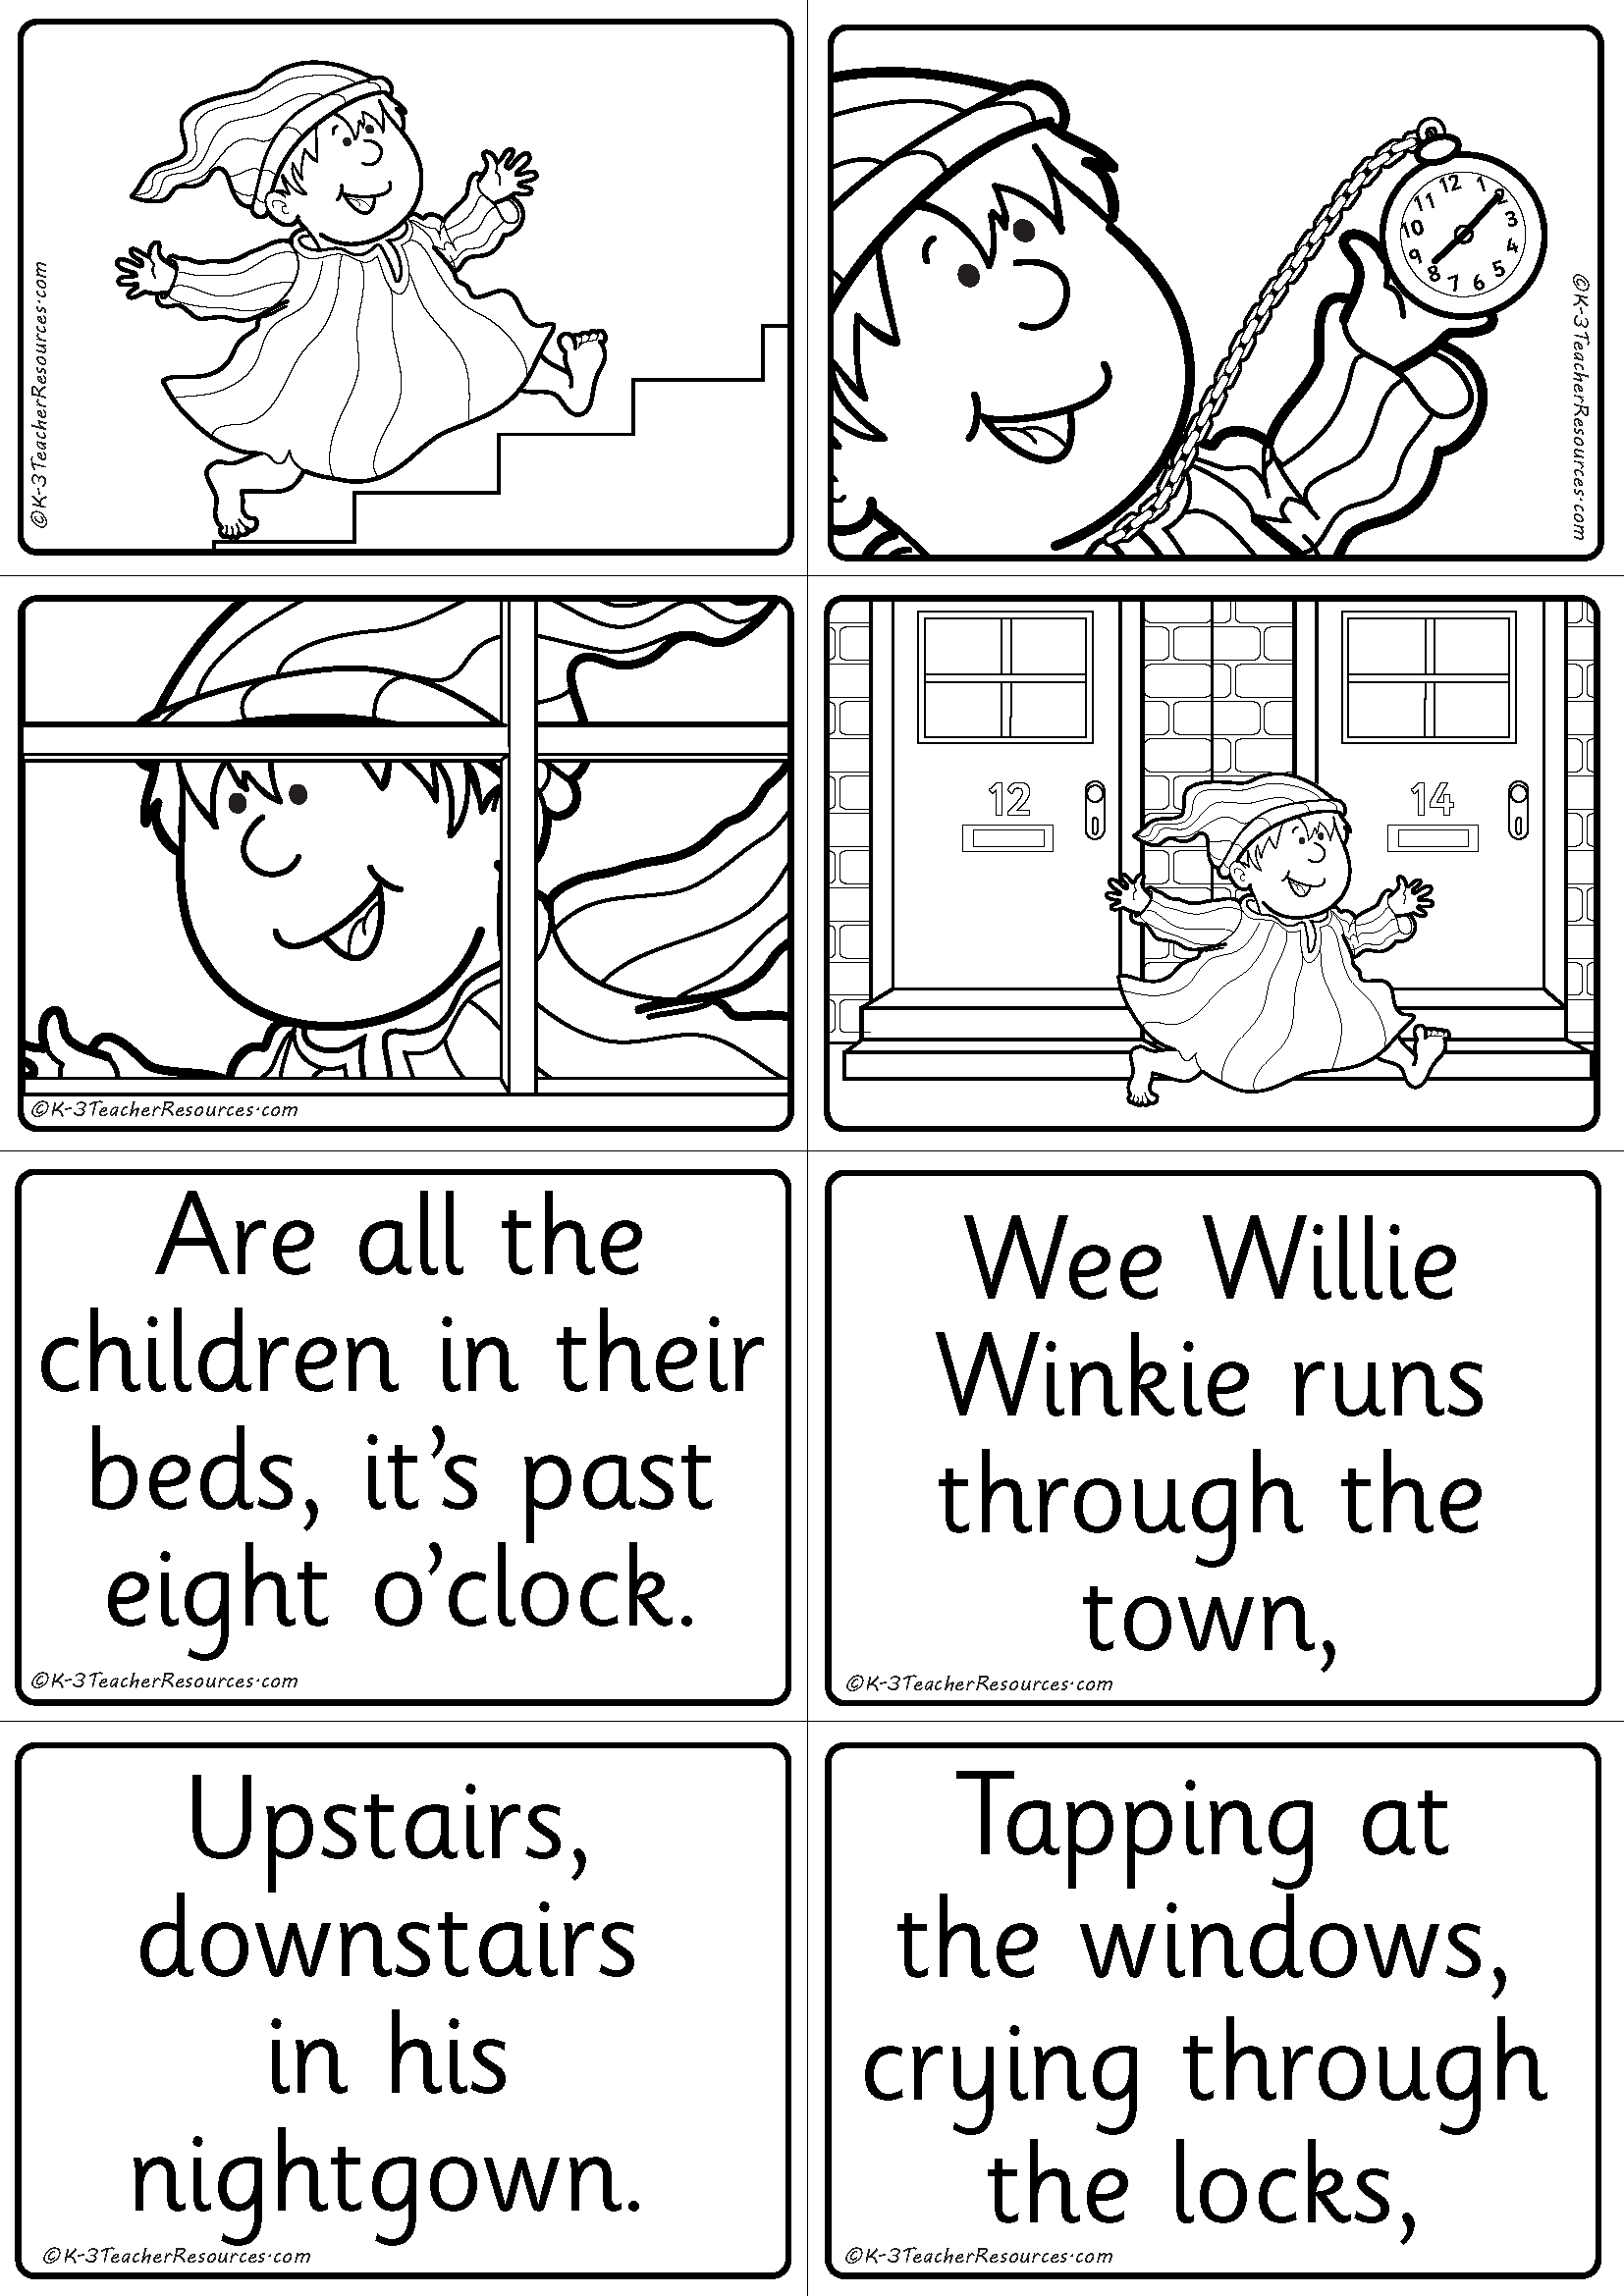 I Like This Nursery Rhyme Because It Challenges The Children By Making The Rhyme Up And Them Nursery Rhymes Activities Nursery Rhymes Nursery Rhymes Preschool [ 2339 x 1654 Pixel ]